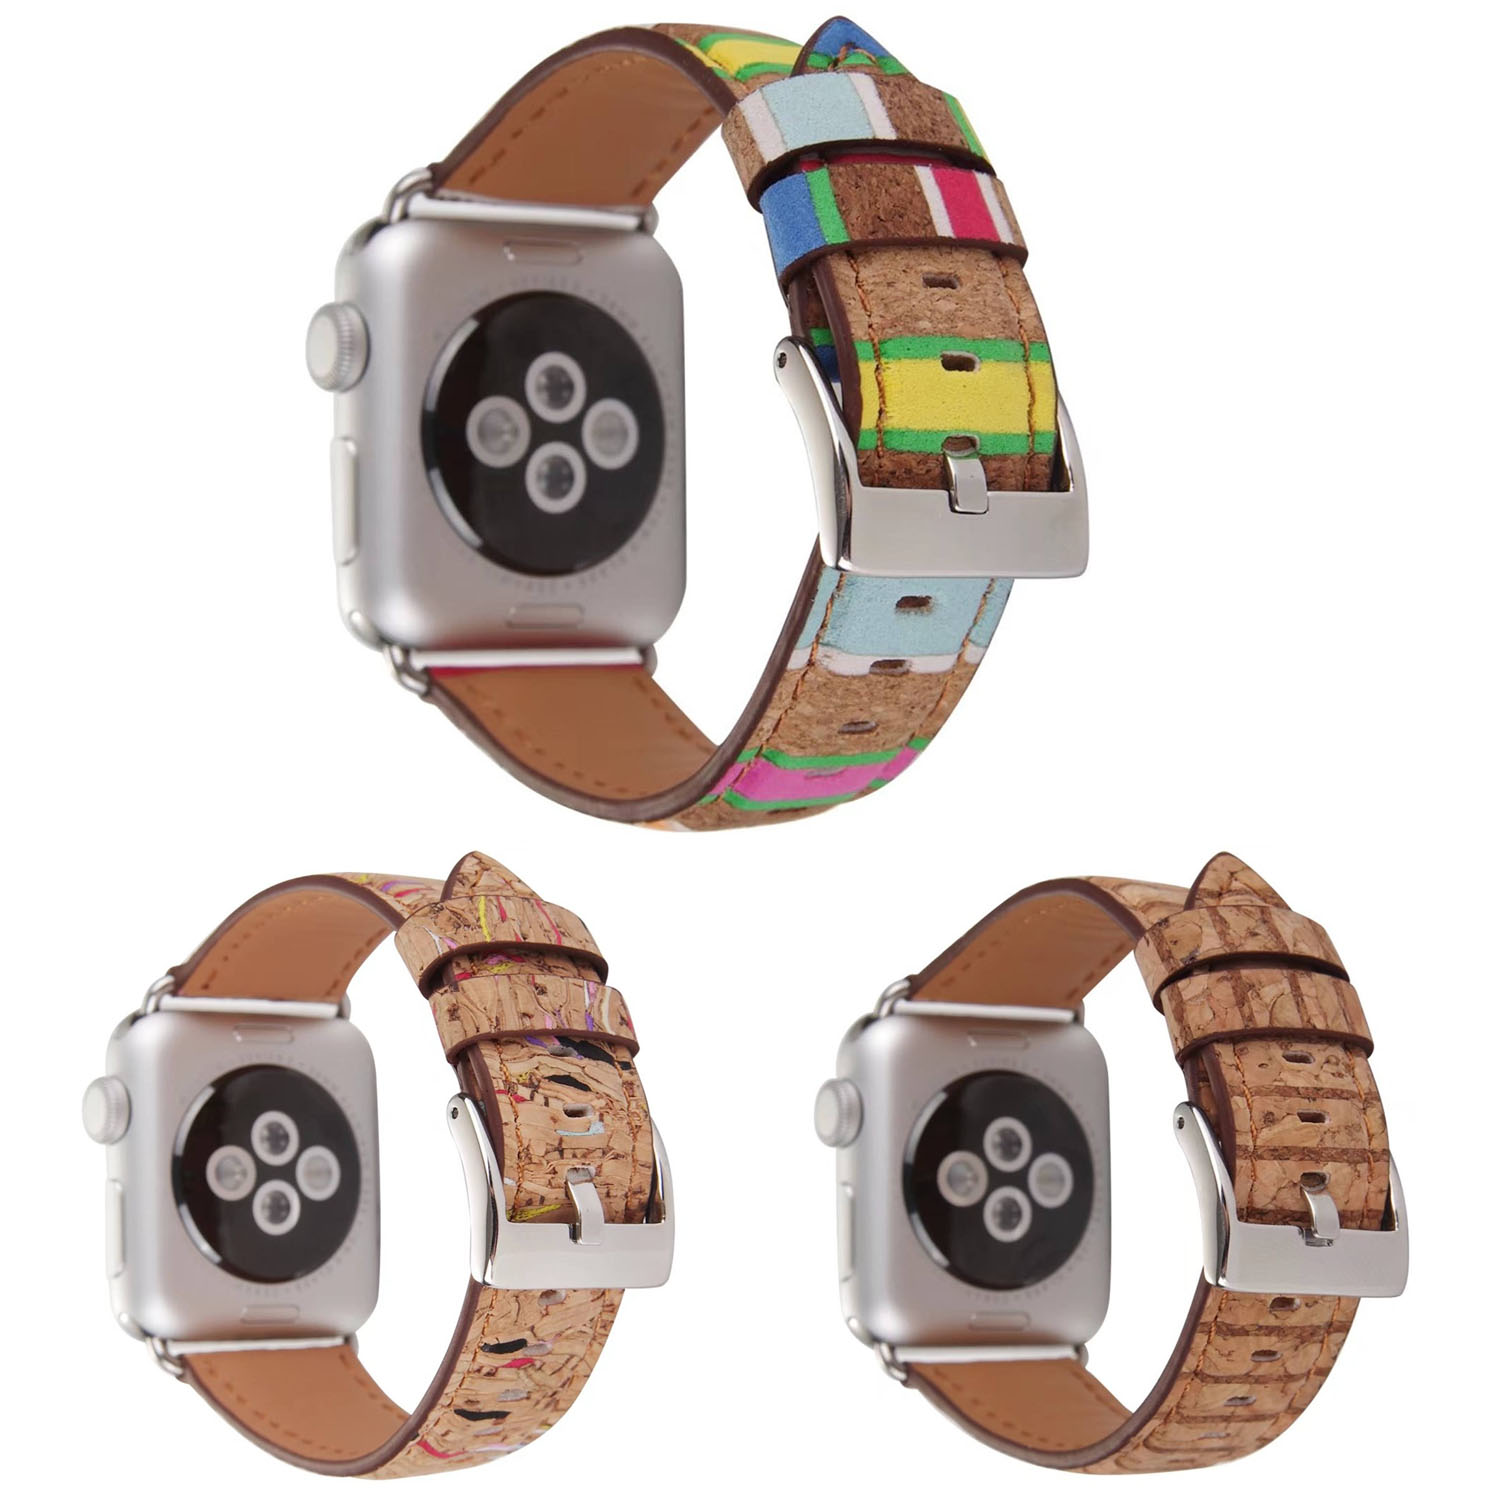 все цены на Colorful Rainbow Stripe Wood Pattern Leather Band for Apple Watch Series 3 2 1 Wrisbands Strap For iWatch Bracelet Belt 38/42mm